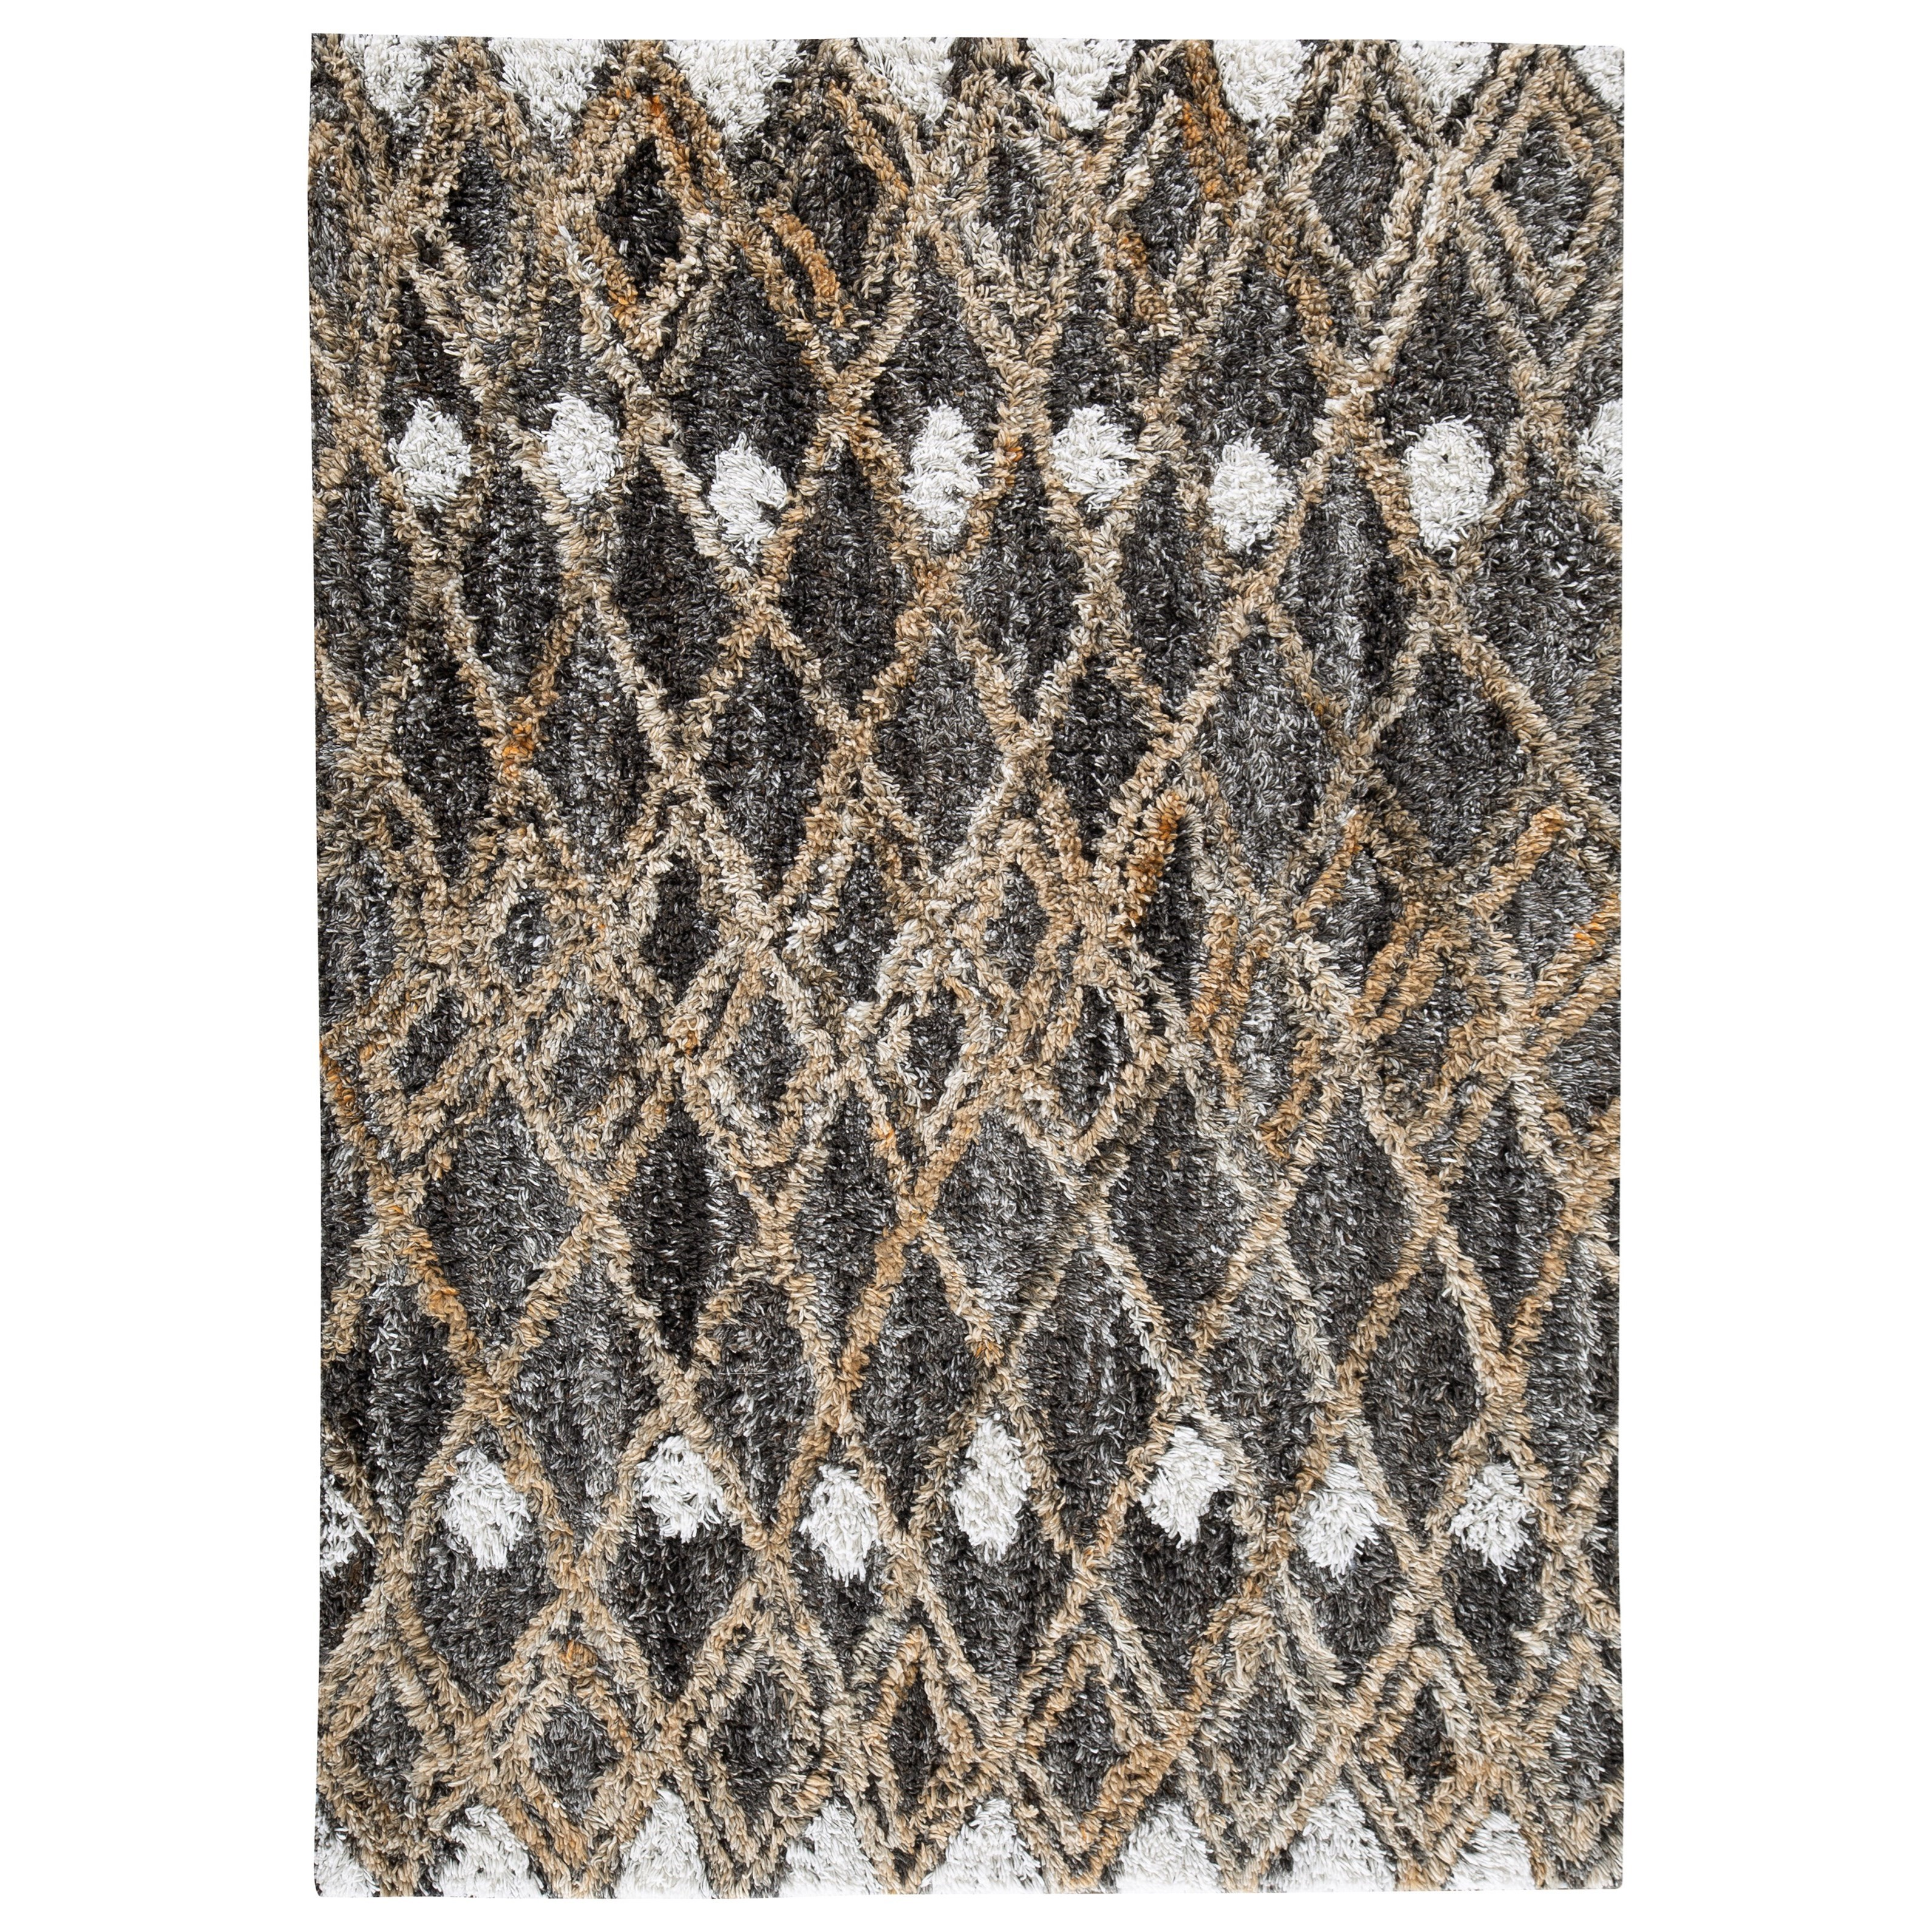 Contemporary Area Rugs Vinmore Tan/Gray Medium Rug by Signature at Walker's Furniture